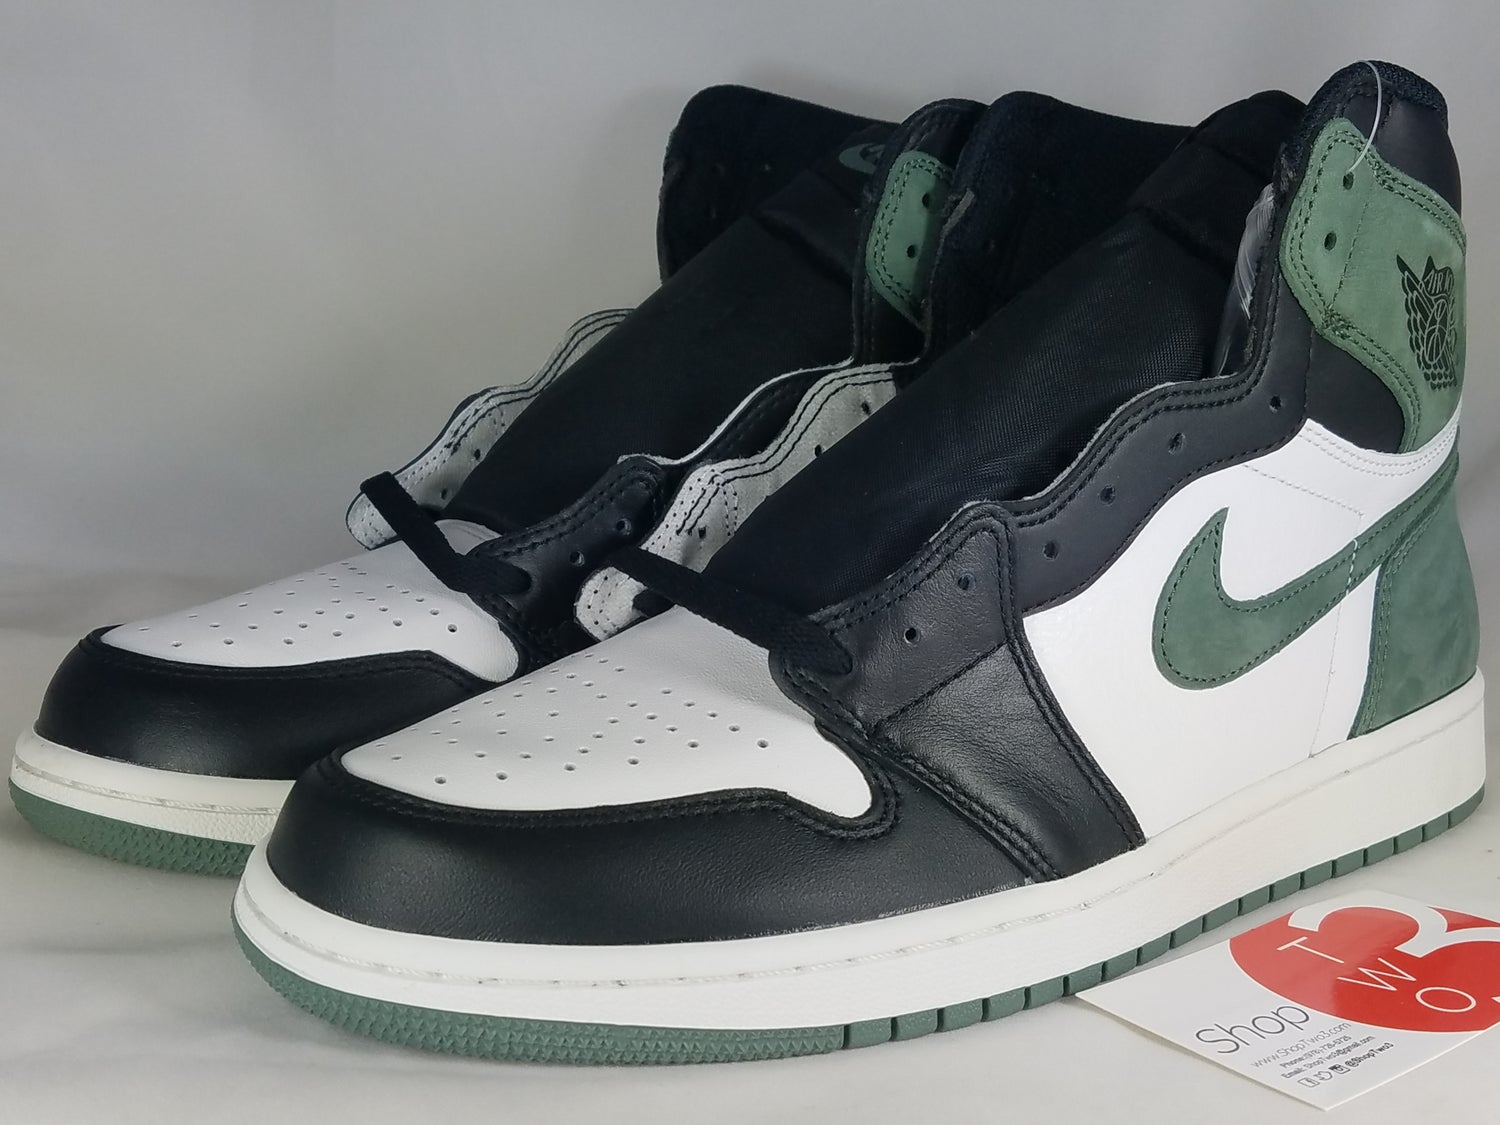 Image of Jordan 1 Retro High Clay Green